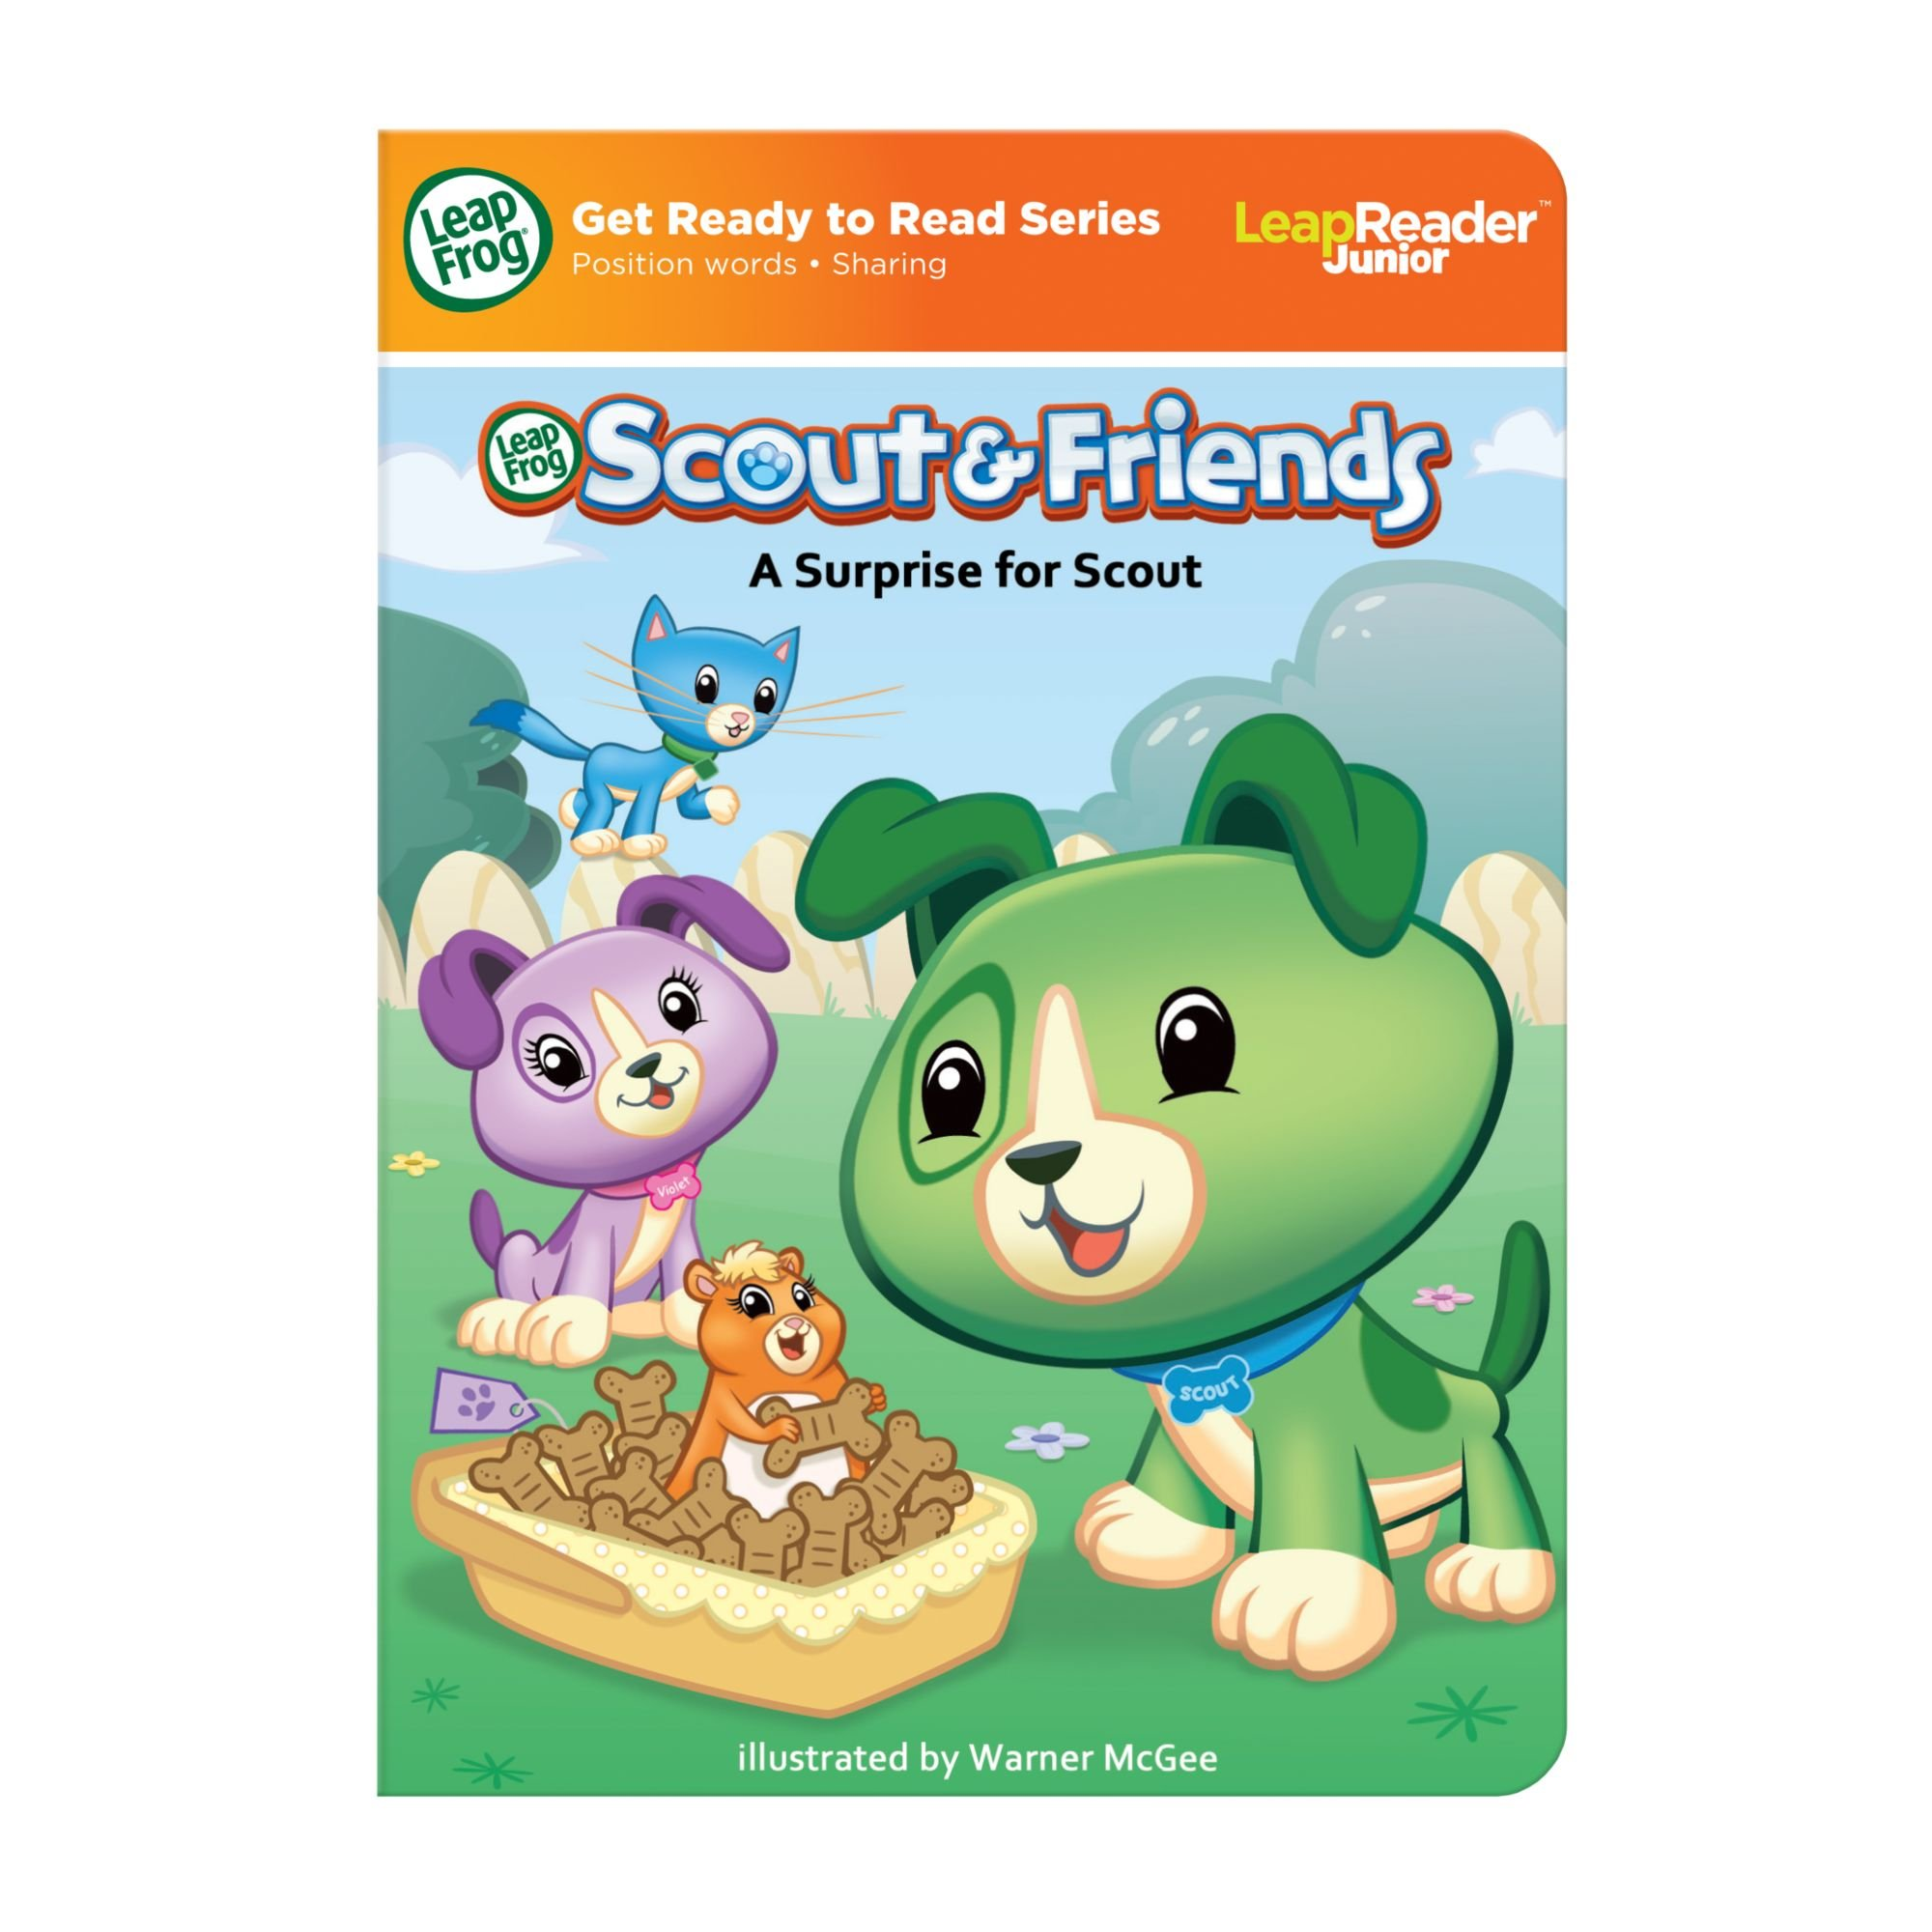 LeapFrog Tag Junior Book Scout And Friends: A Surprise for Scout (works with LeapReader Junior) by LeapFrog (Image #6)